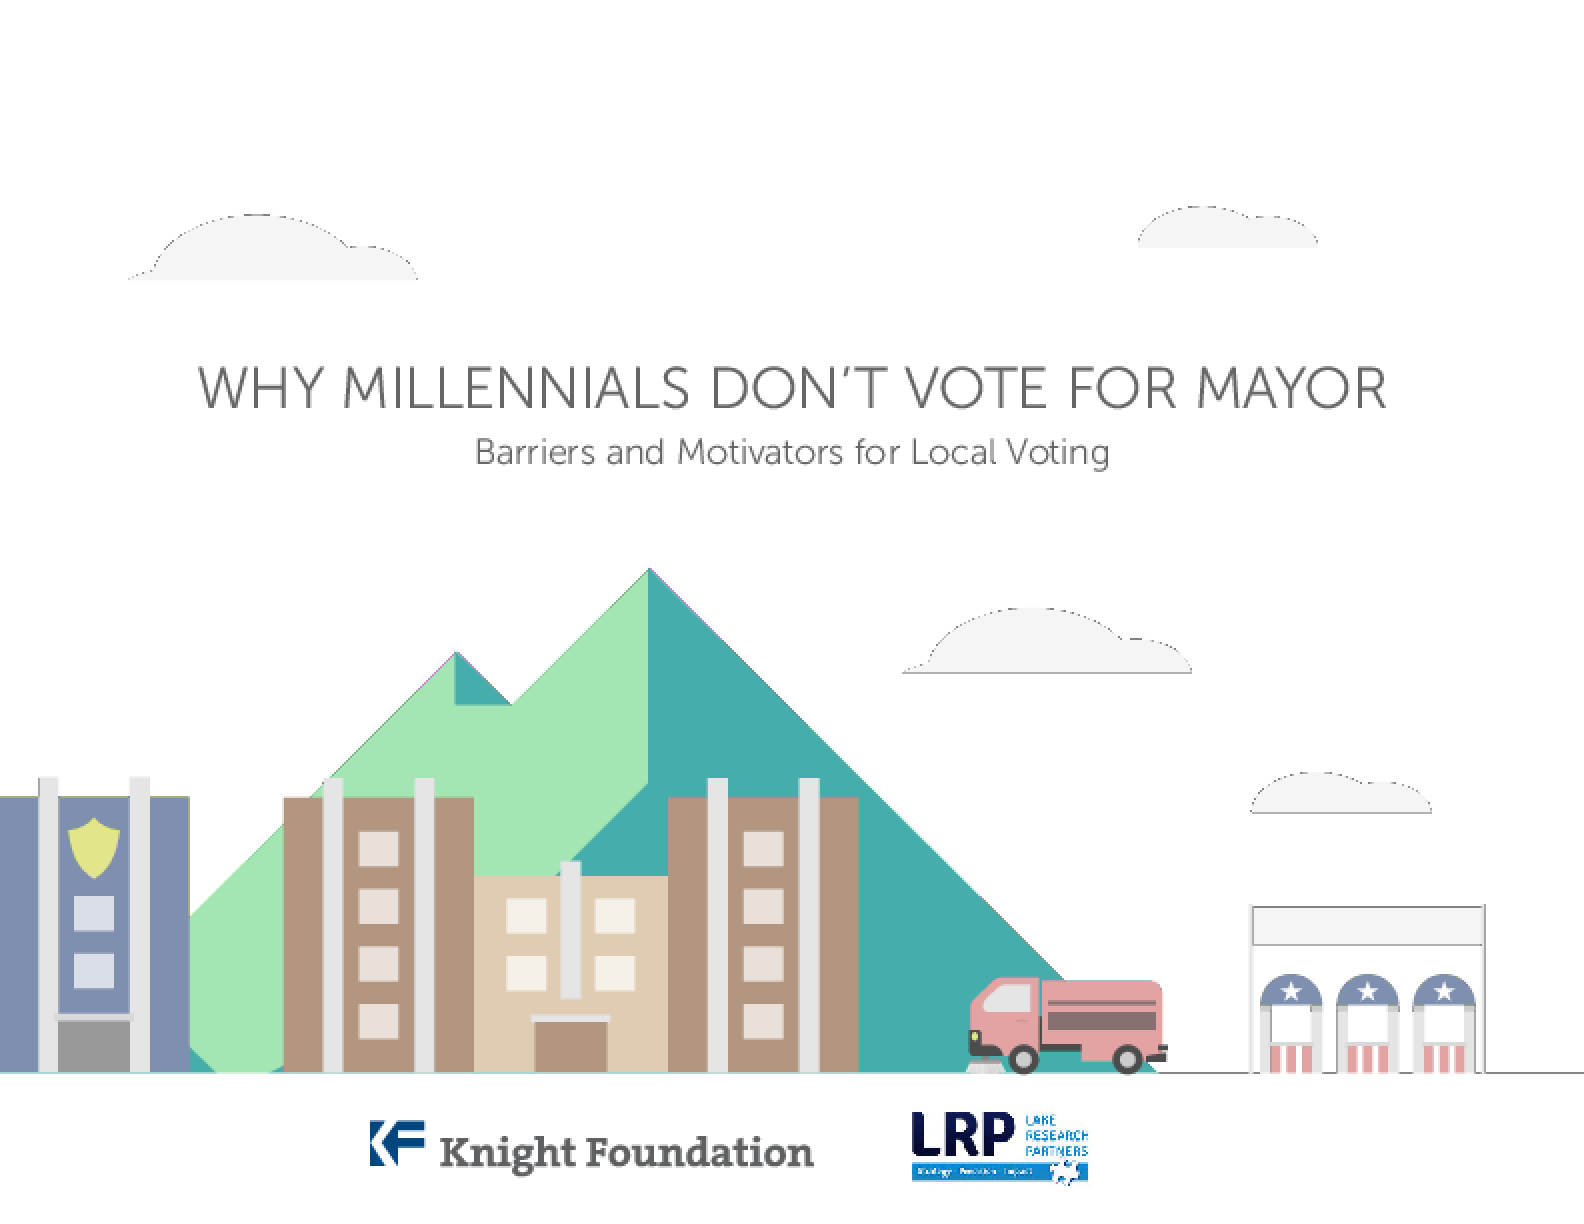 Why Millennials Don't Vote for Mayor: Barriers and Motivators for Local Voting